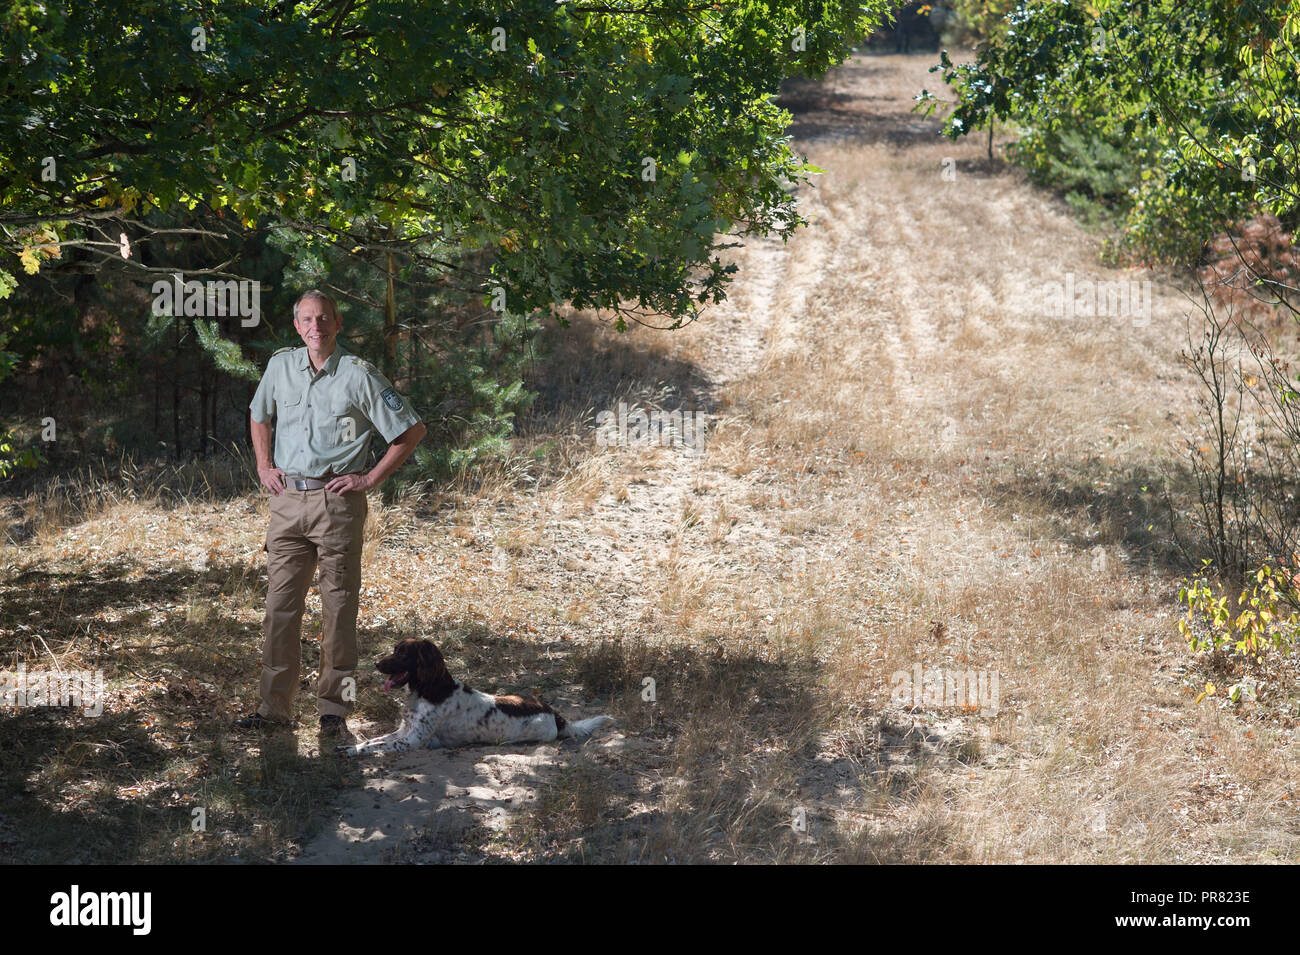 18 September 2018, Saxony-Anhalt, Colbitz: The forestry director Rainer Aumann, head of the Federal Forestry Company Northern Saxony-Anhalt, stands on the military training area Altmark in the Letzlinger Heide near Colbitz. There is a bat quarter which had been set up in a former Soviet bunker as a compensatory measure for the construction of the A14 motorway. Photo: Klaus-Dietmar Gabbert/dpa-Zentralbild/dpa Stock Photo